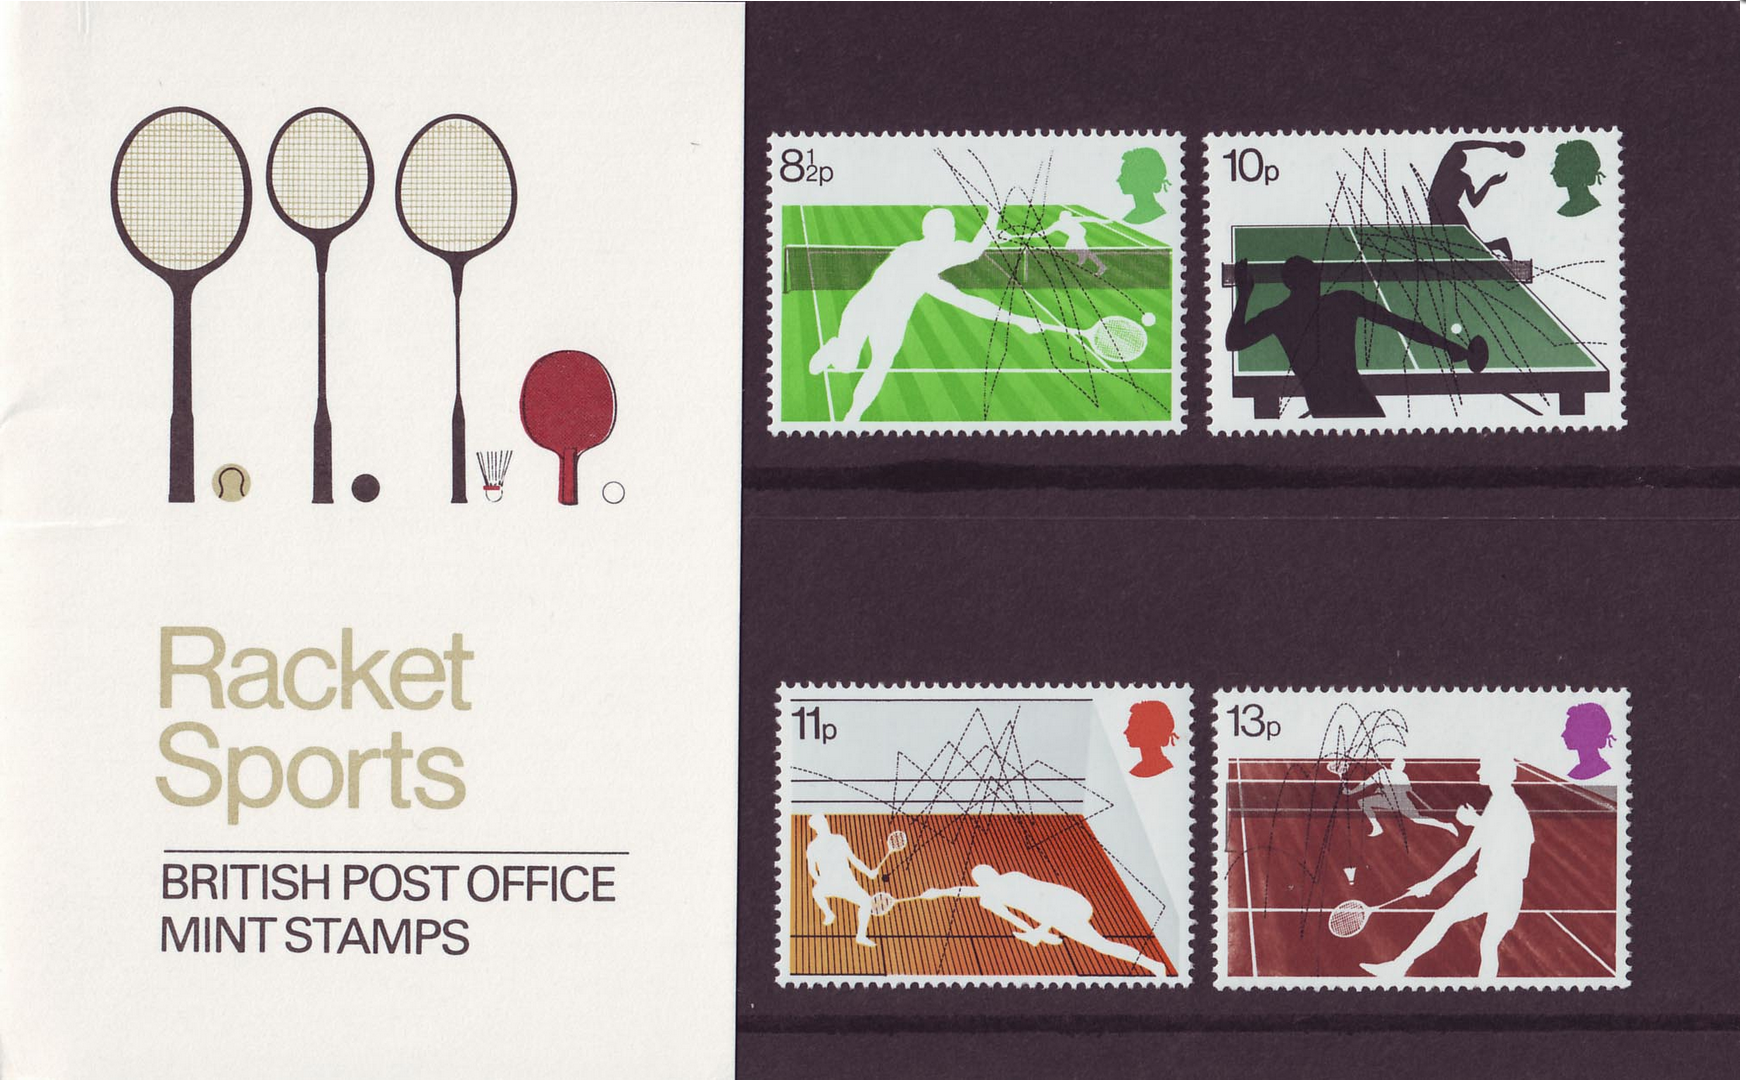 Racket Sports - Commemorative Squash Stamps by Andrew Restall